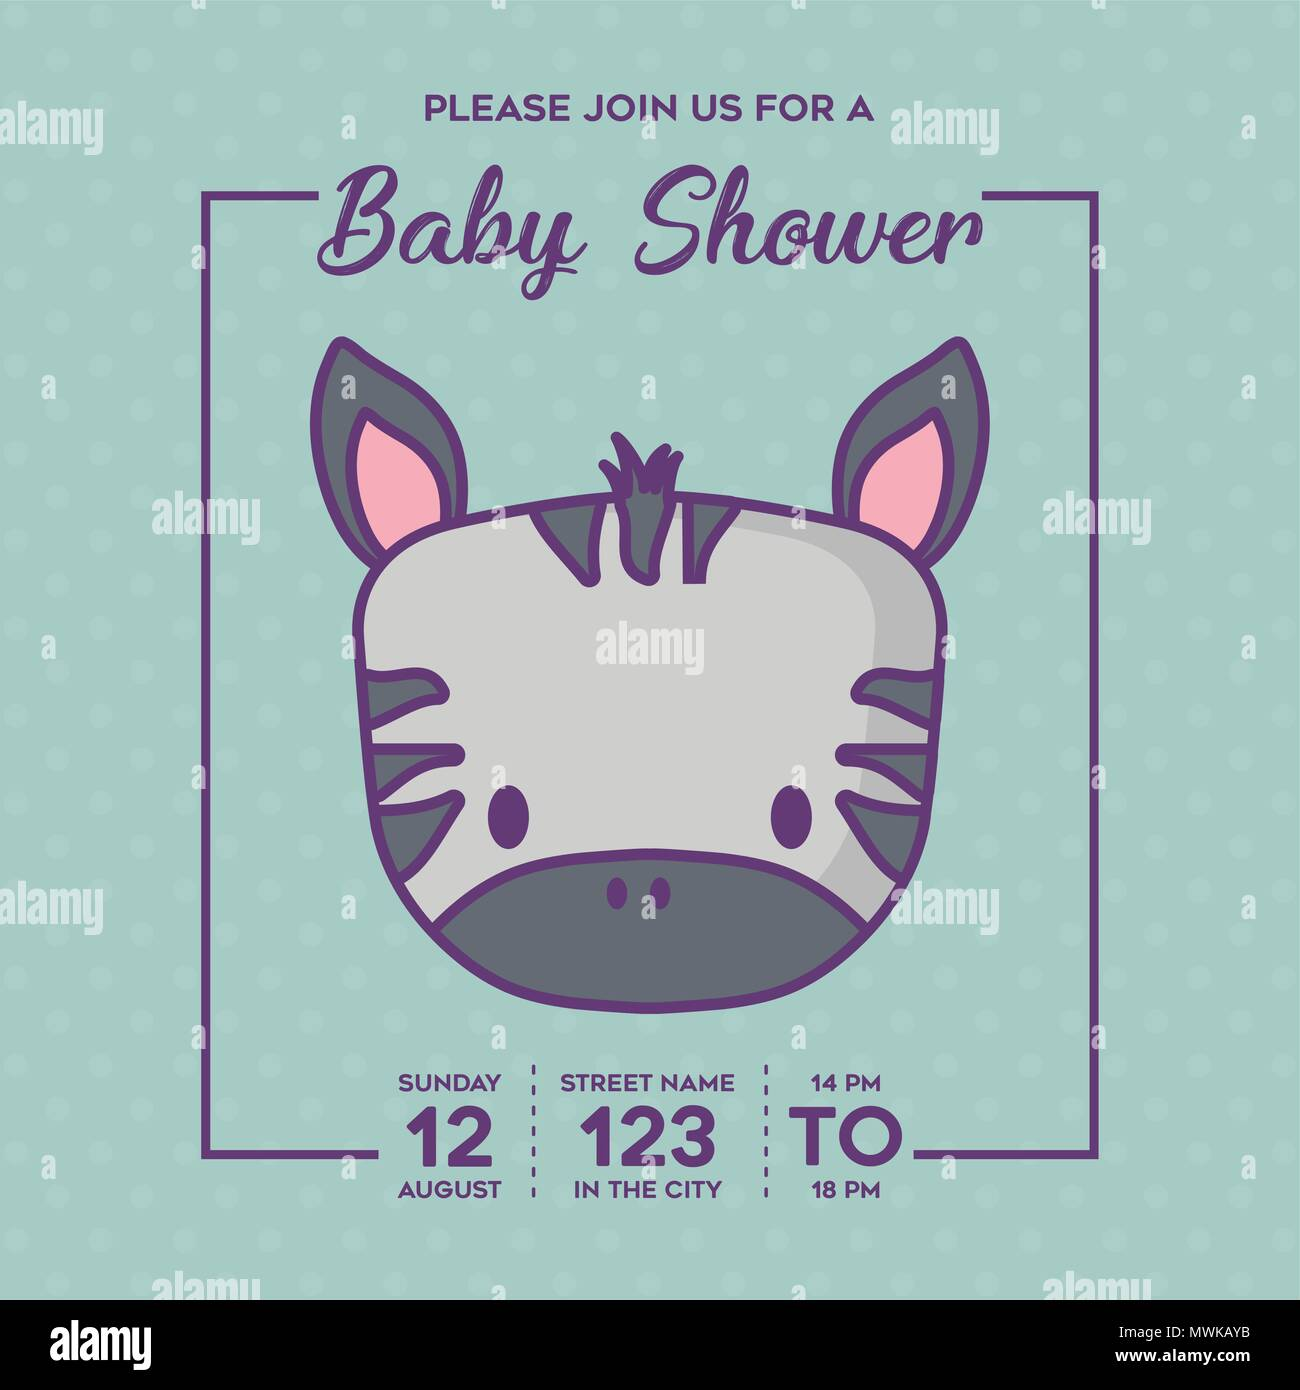 Baby Shower Invitation With Cute Zebra Icon Over Blue Background